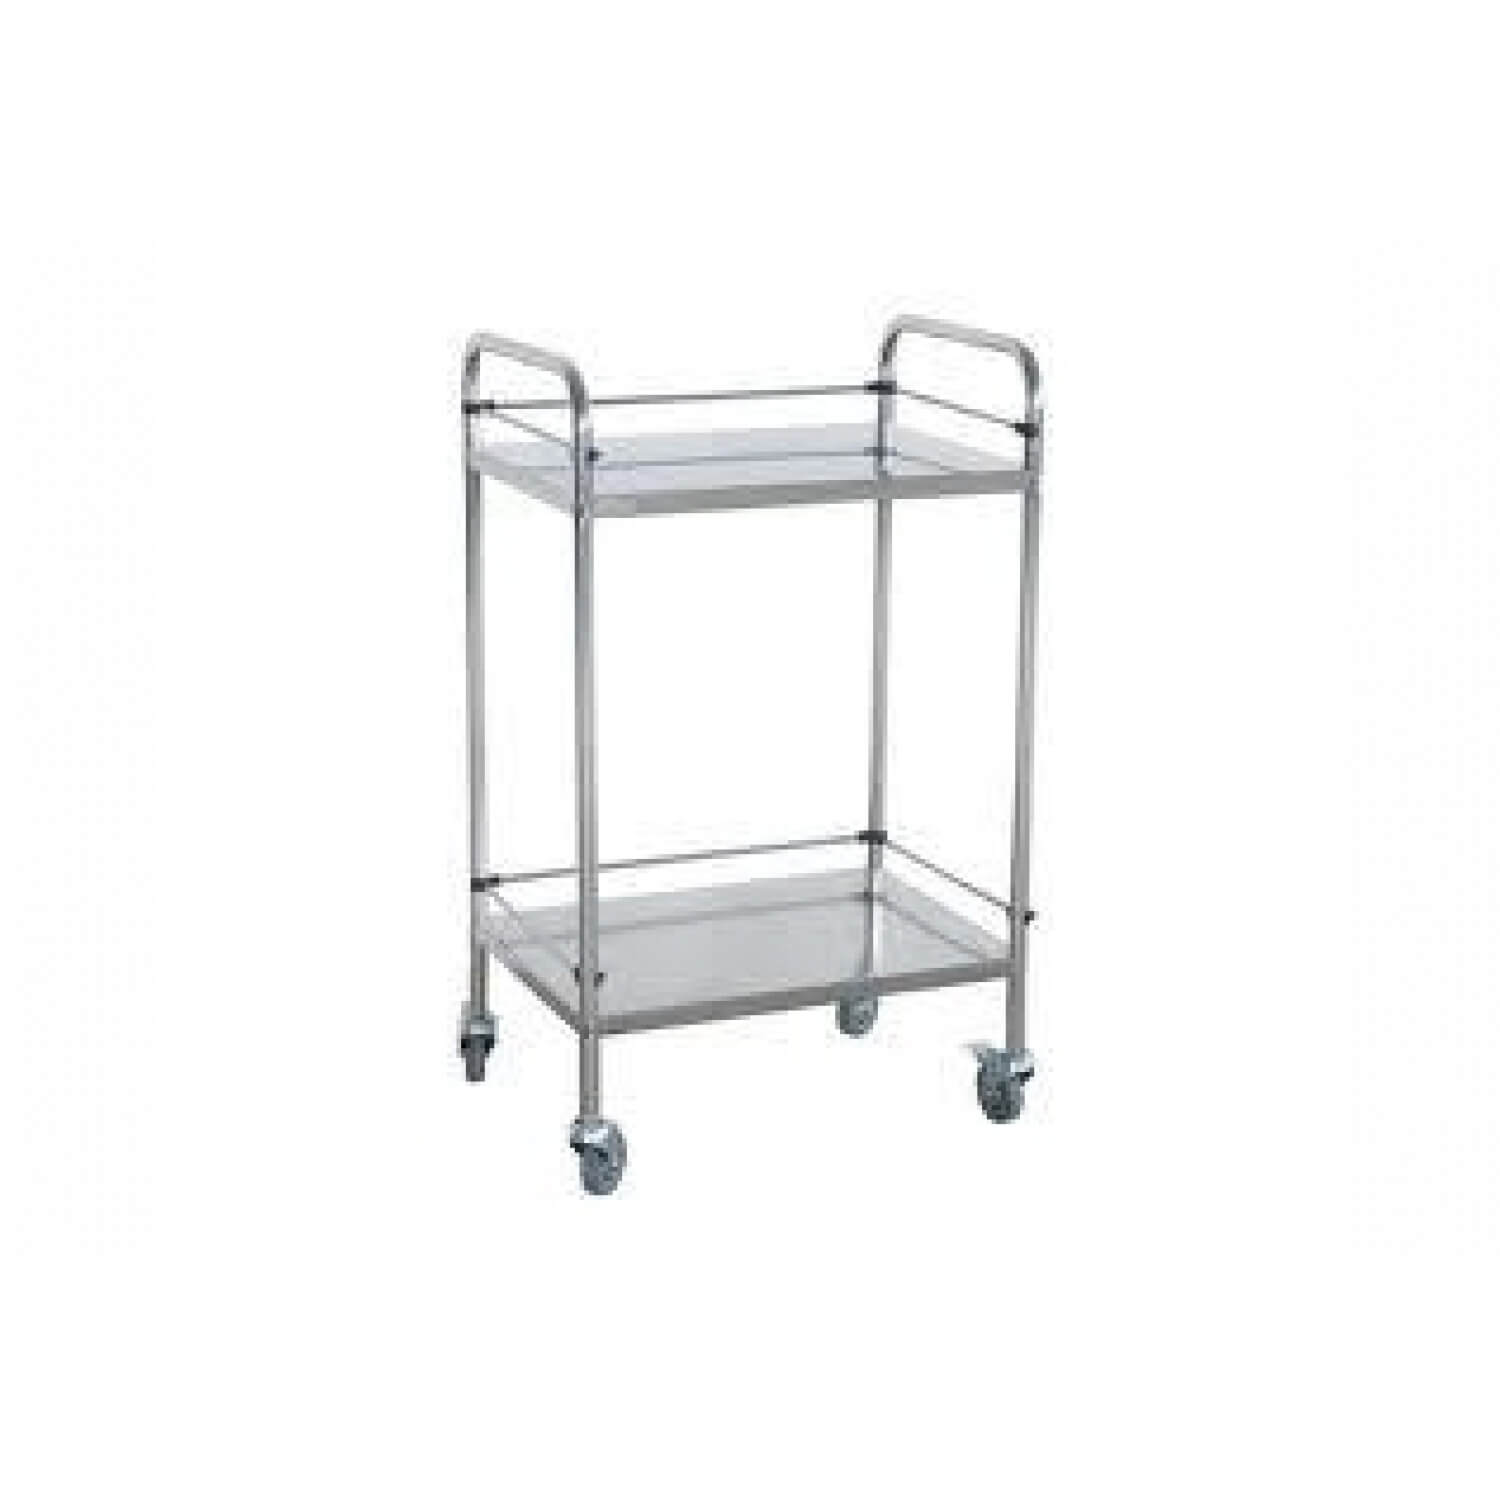 Instrument Trolley, 2 Shelves